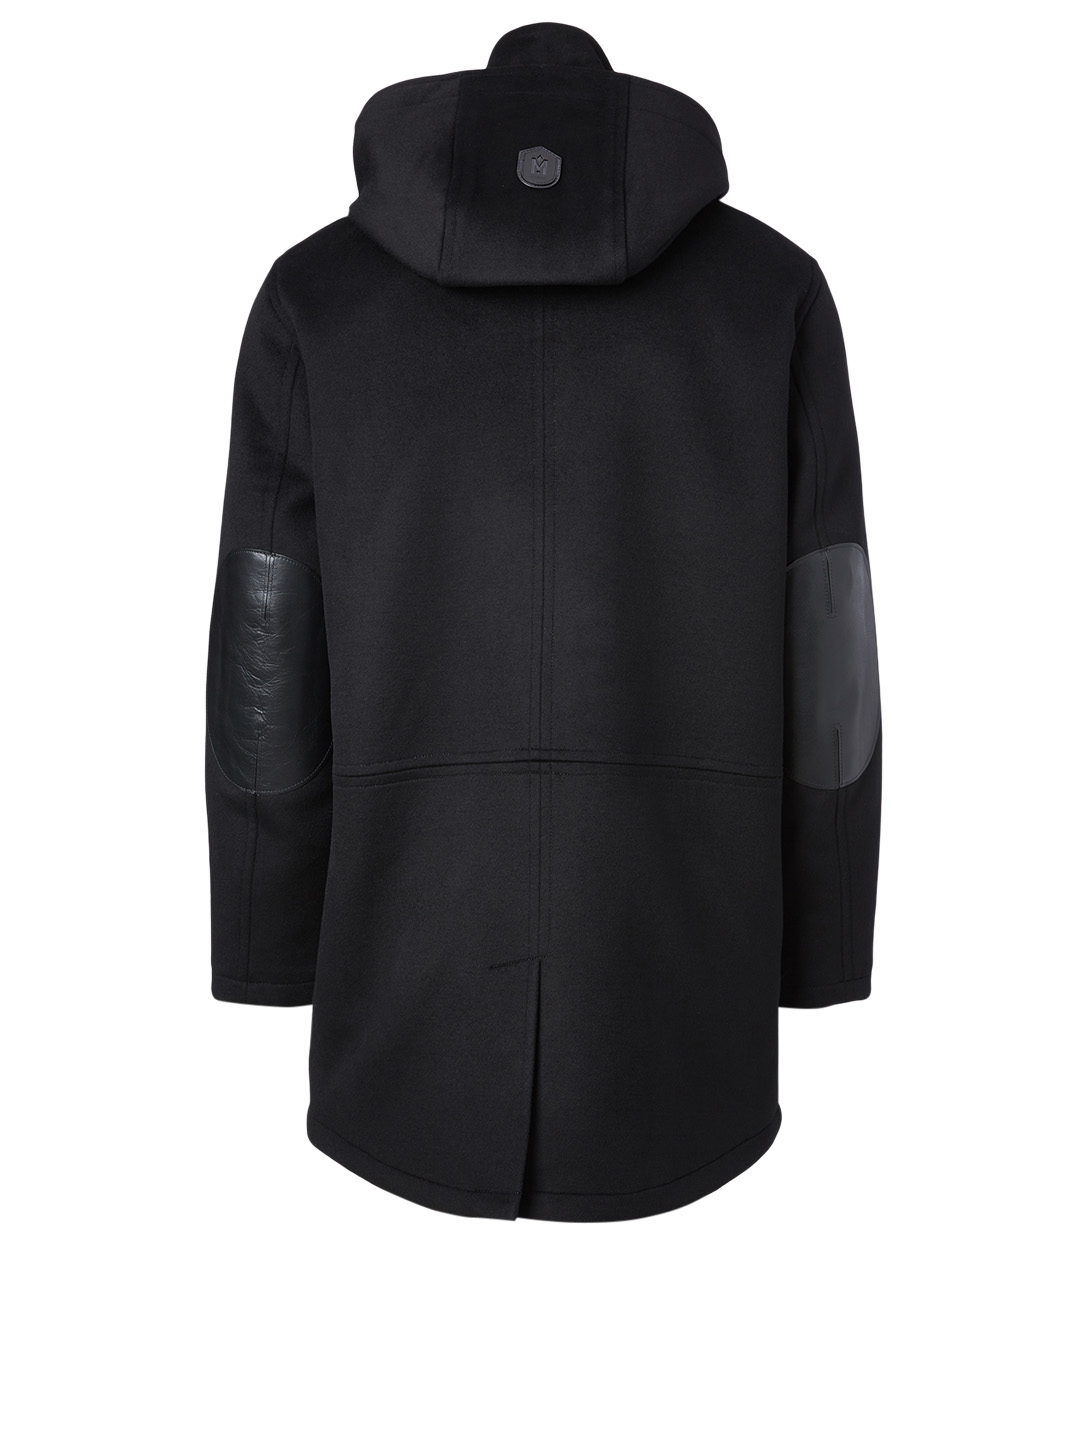 MACKAGE Myles Wool And Cashmere Coat Men's Black